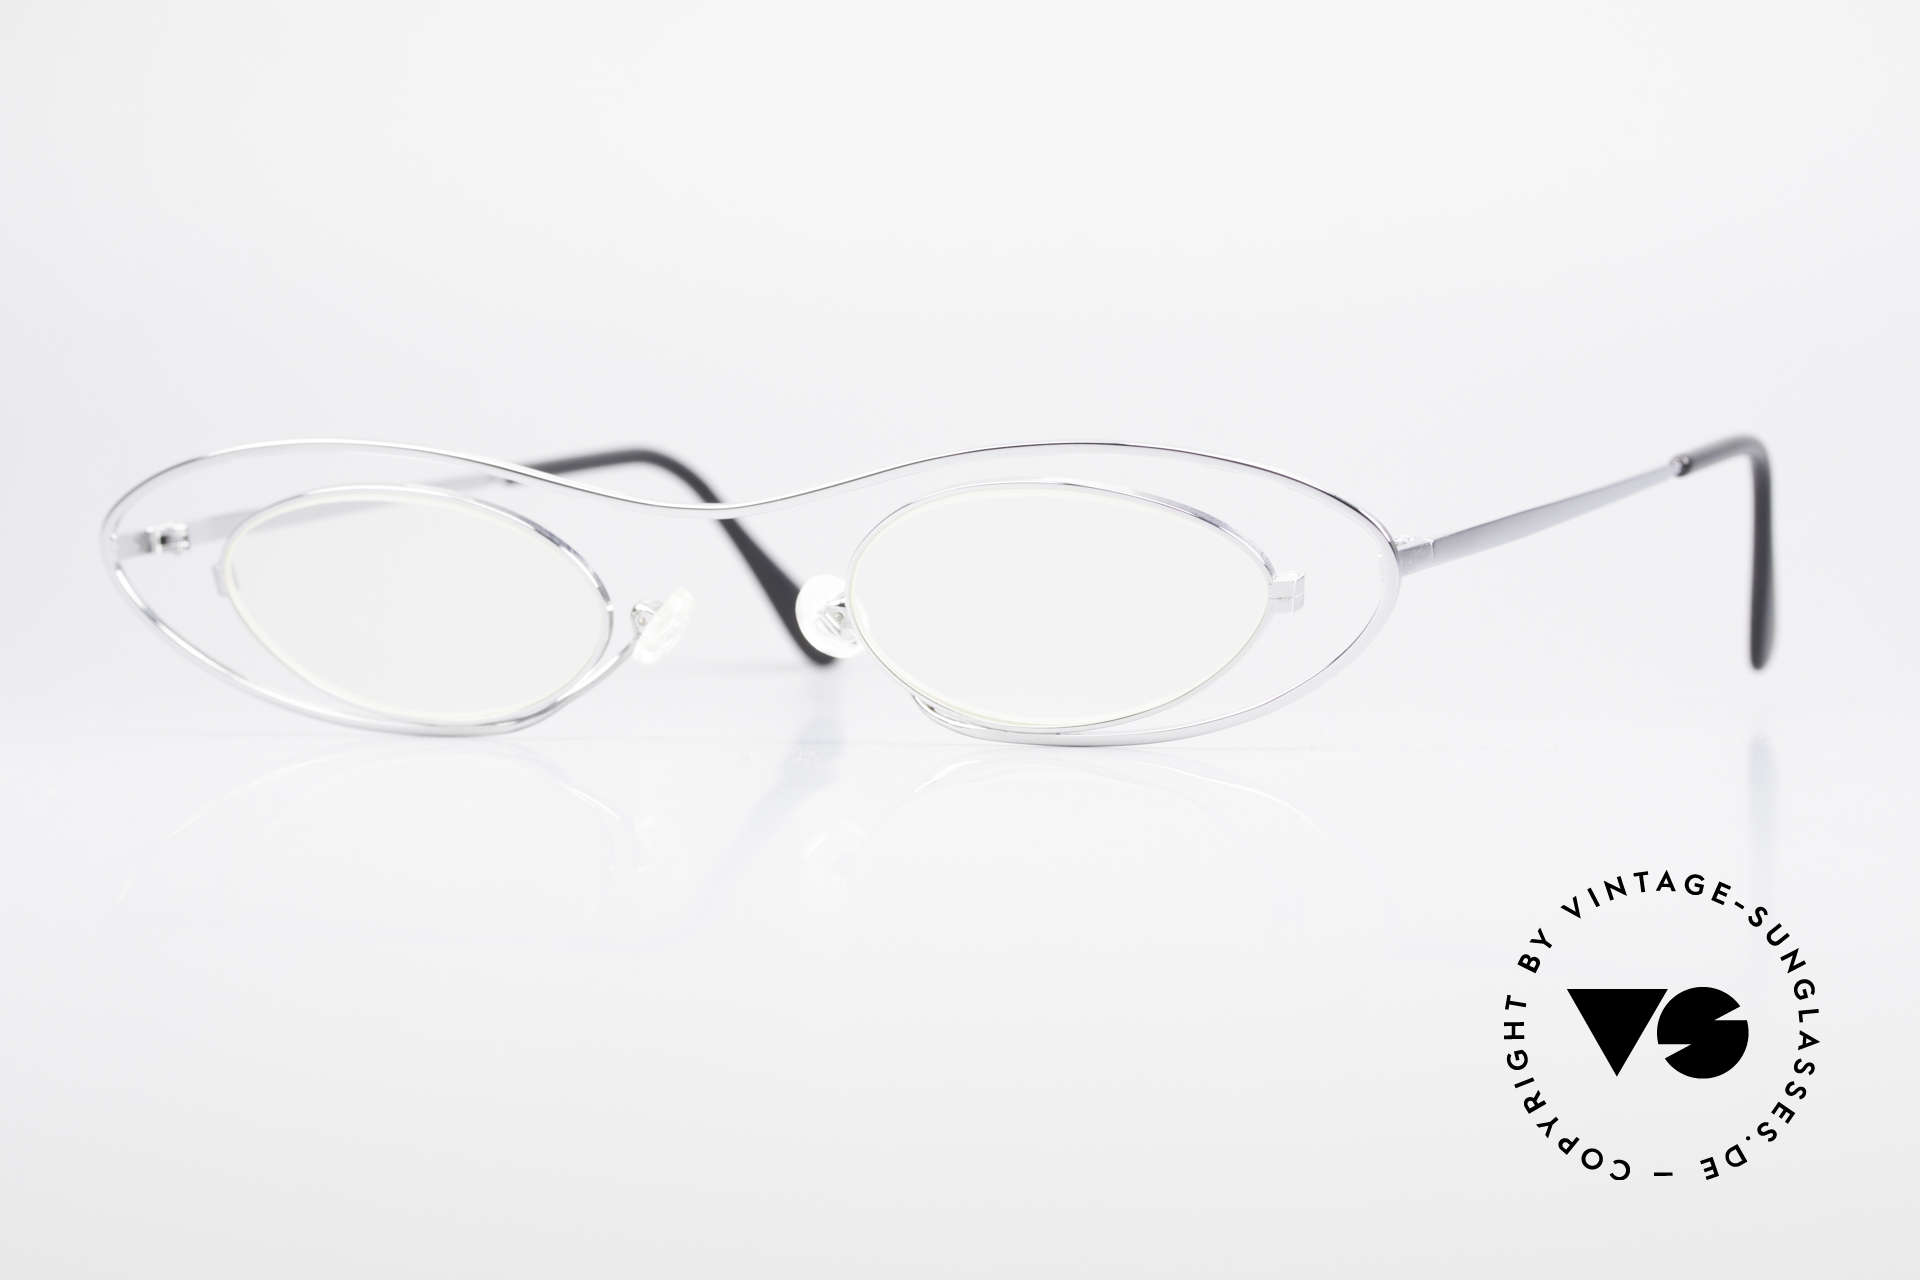 Theo Belgium Mama Vintage Glasses For Mama, Theo Belgium = the most self-willed brand in the world, Made for Women